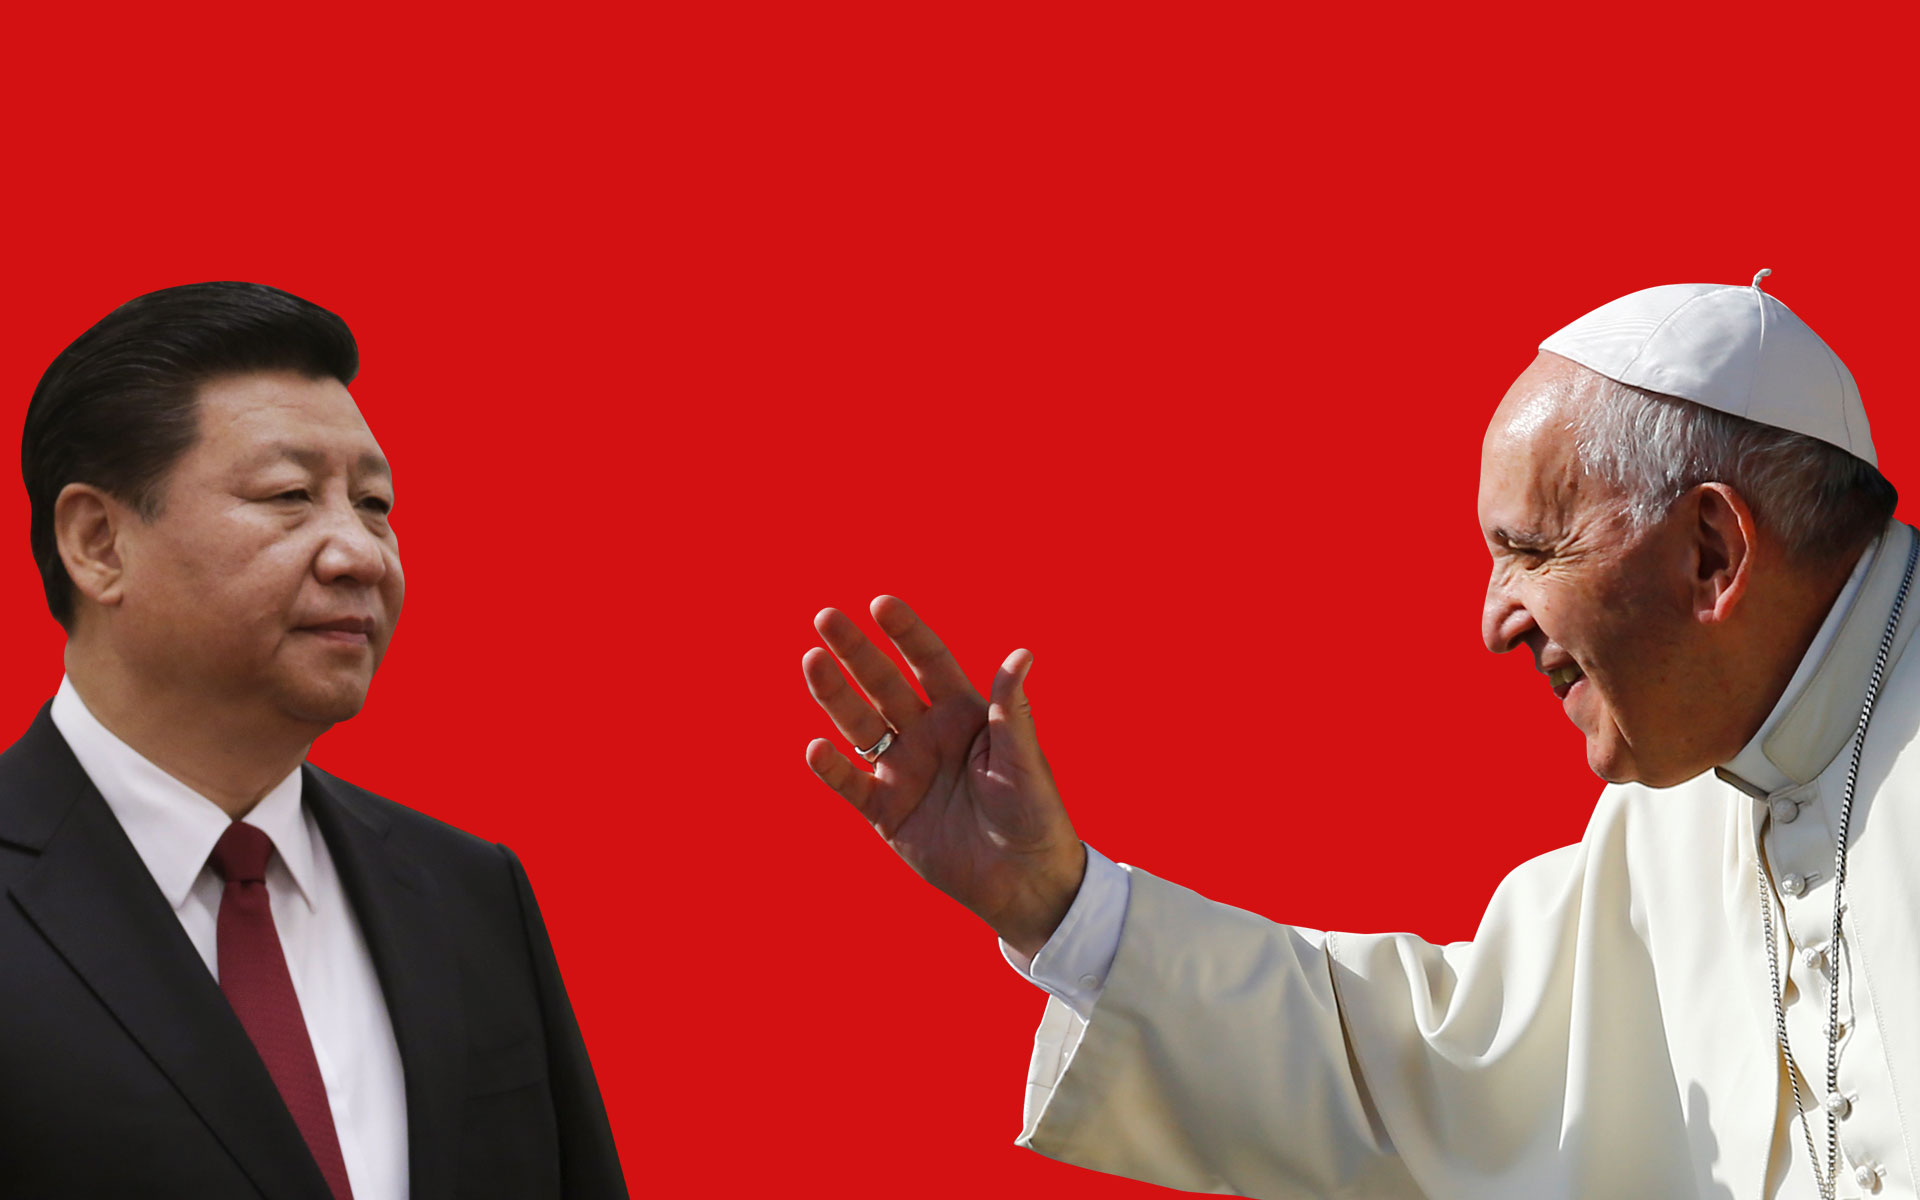 PAPAL OVERTURE: Pope Francis, seen here in a photomontage with Chinese President Xi Jinping, has been sending overtures to Beijing since he became pope in March 2013, signaling he wants to transform the frigid relations between the Vatican and China. (Photo courtesy:REUTERS/Jason Lee/Stefano Rellandini)